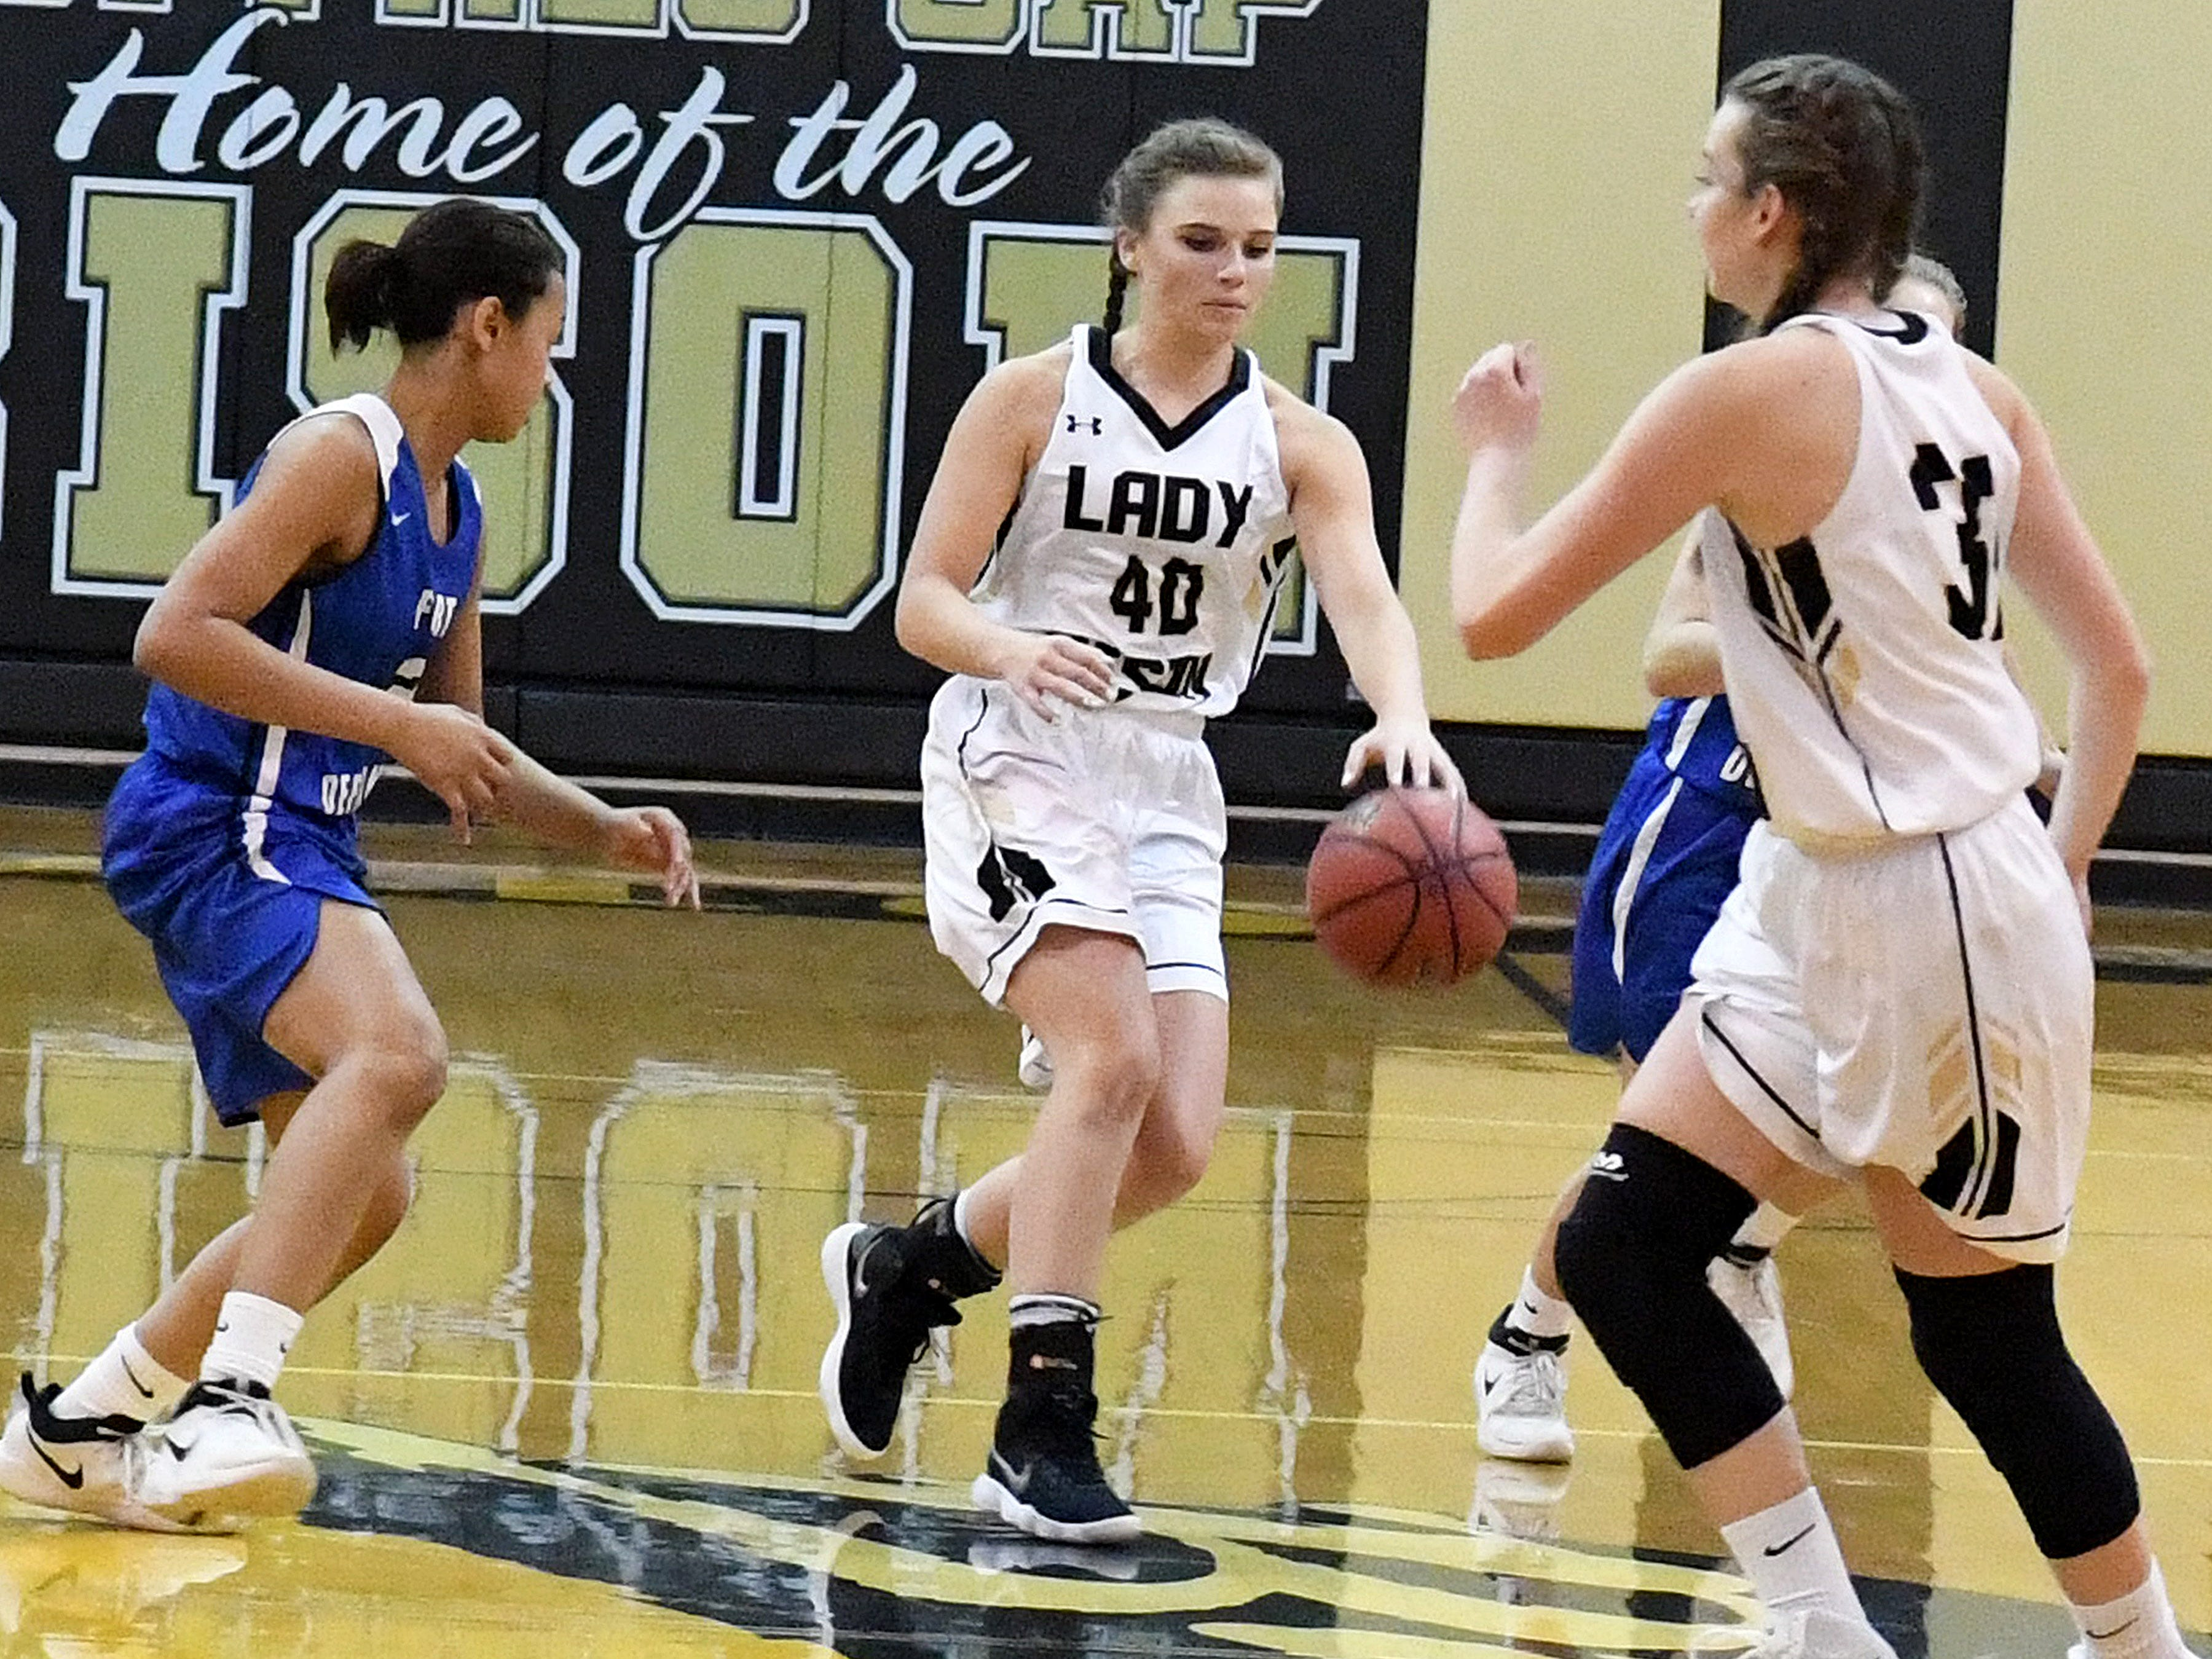 Buffalo Gap's Sydney Digman moves the ball during a game played in Swoope on Wednesday, Dec. 5, 2018.